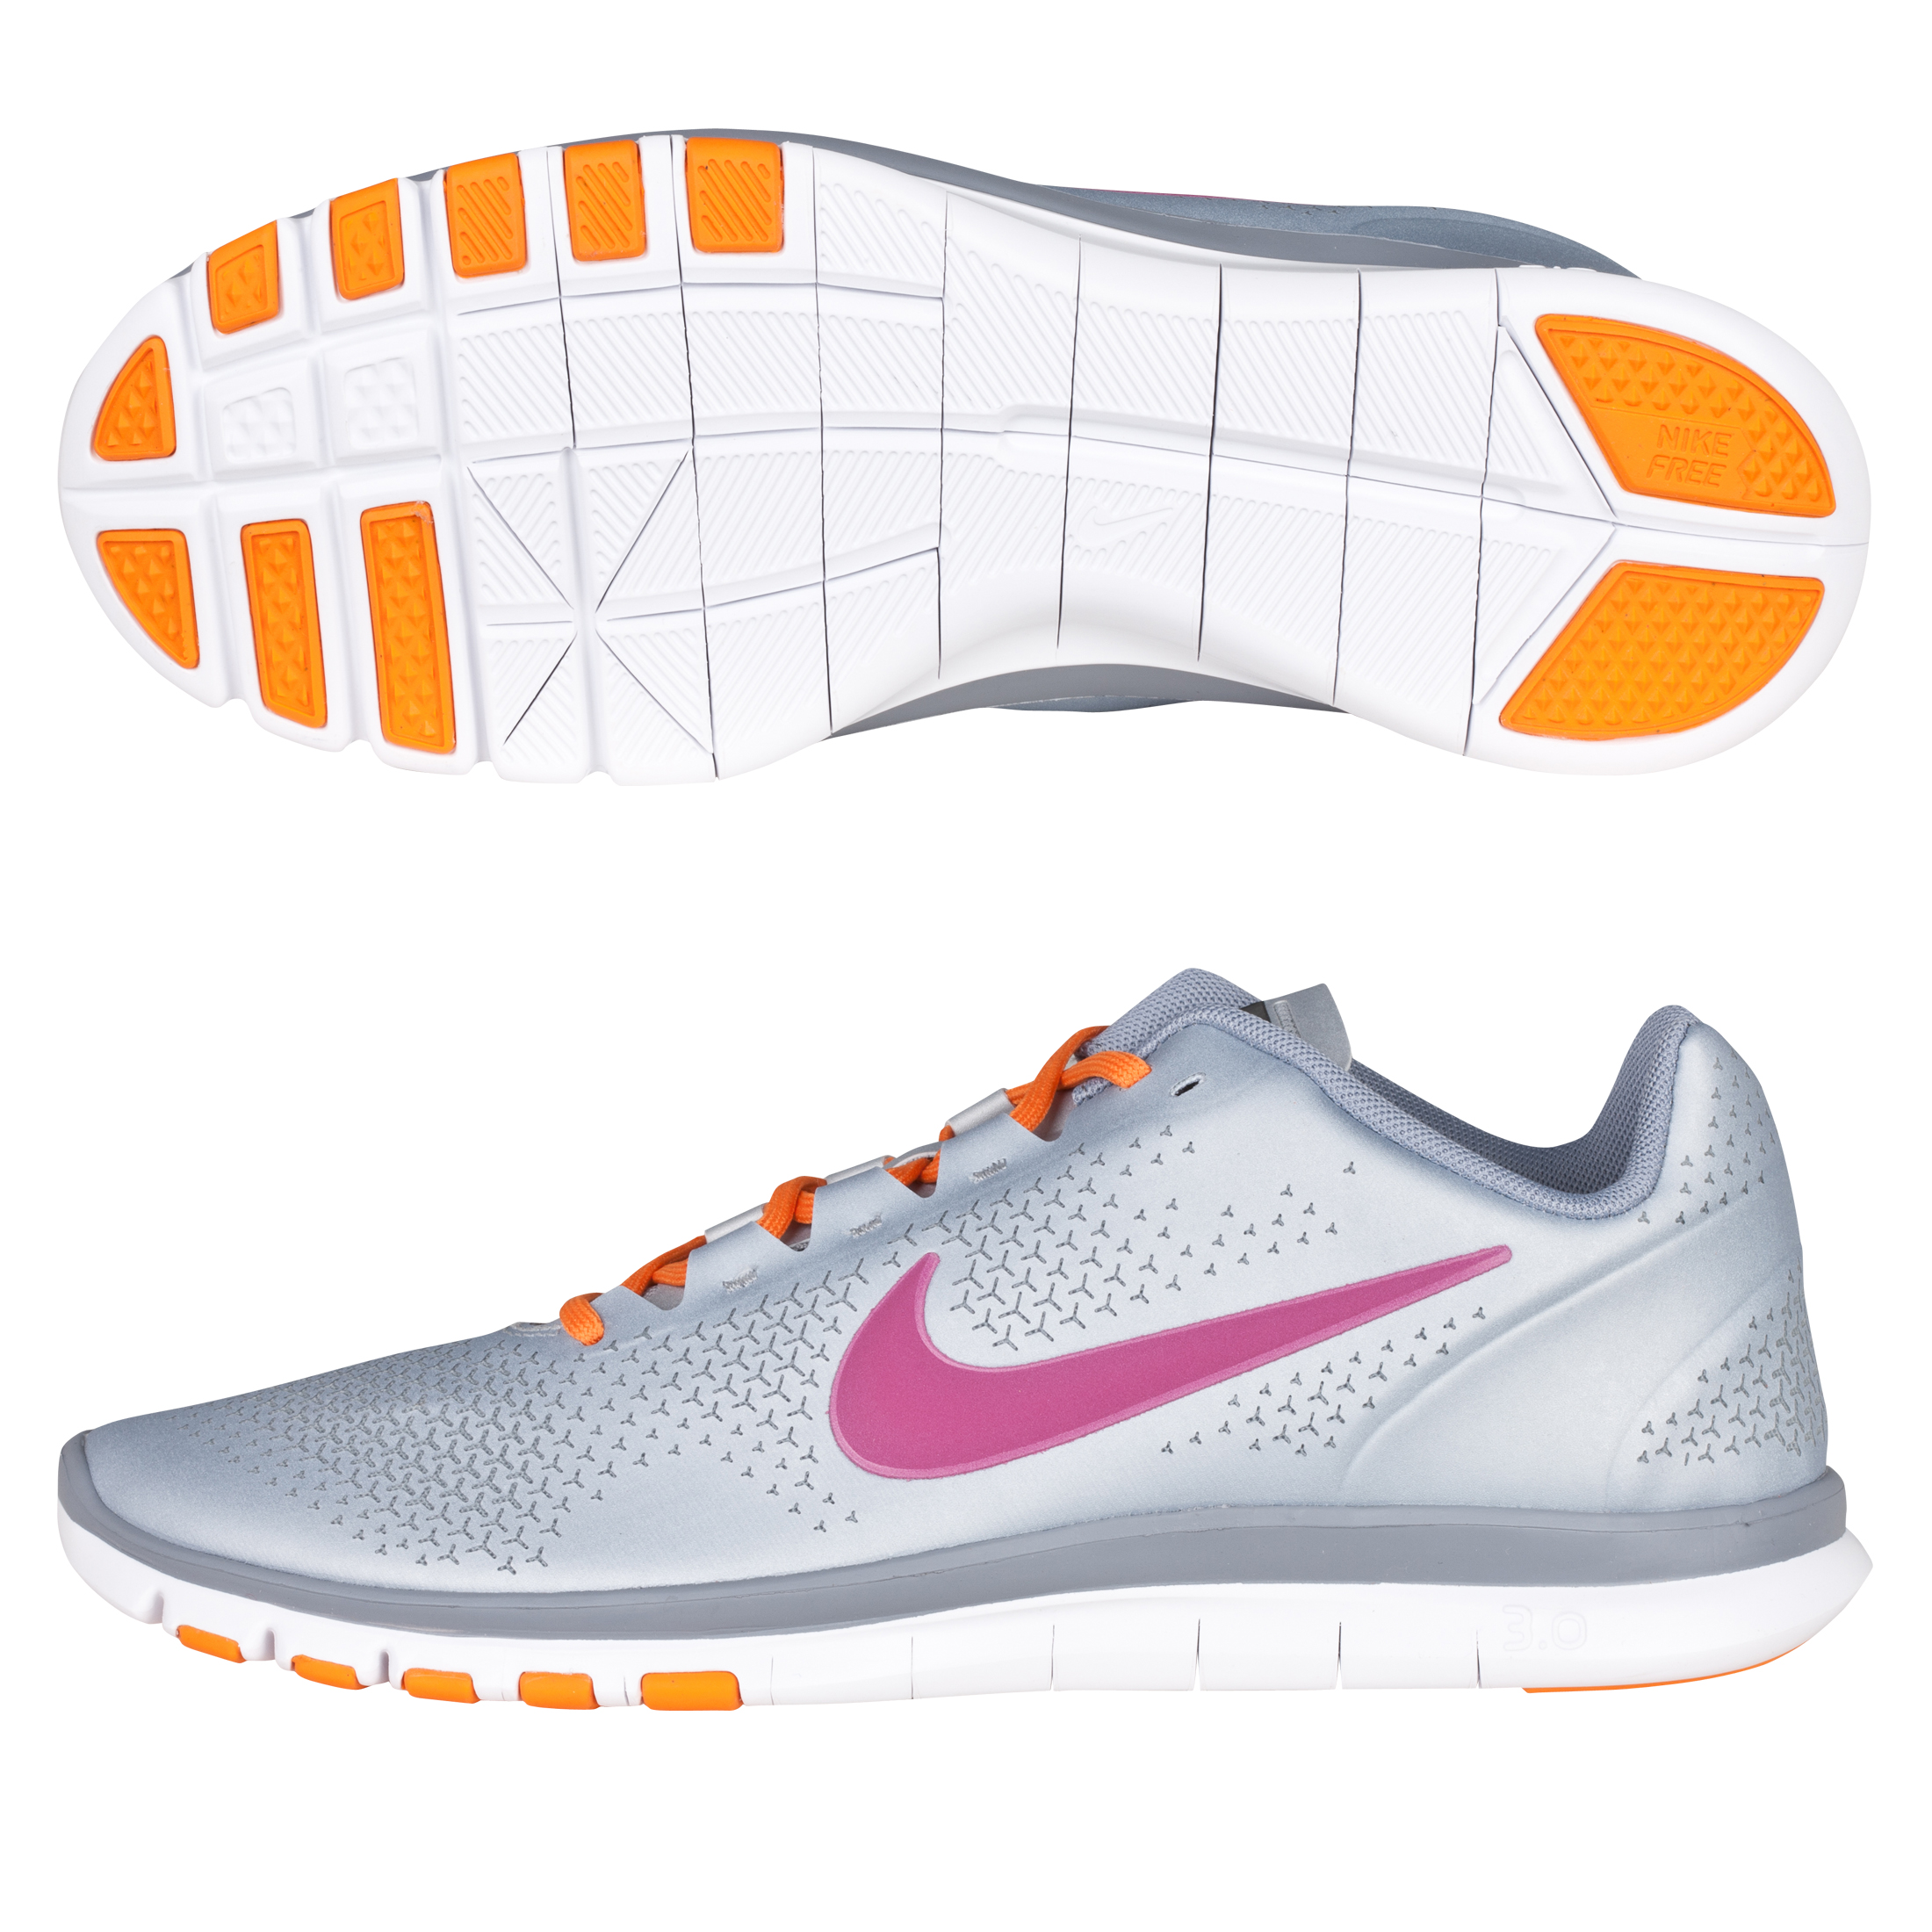 Nike Womens Free Advantage Trainer - Platinum/Fireberry - Womens